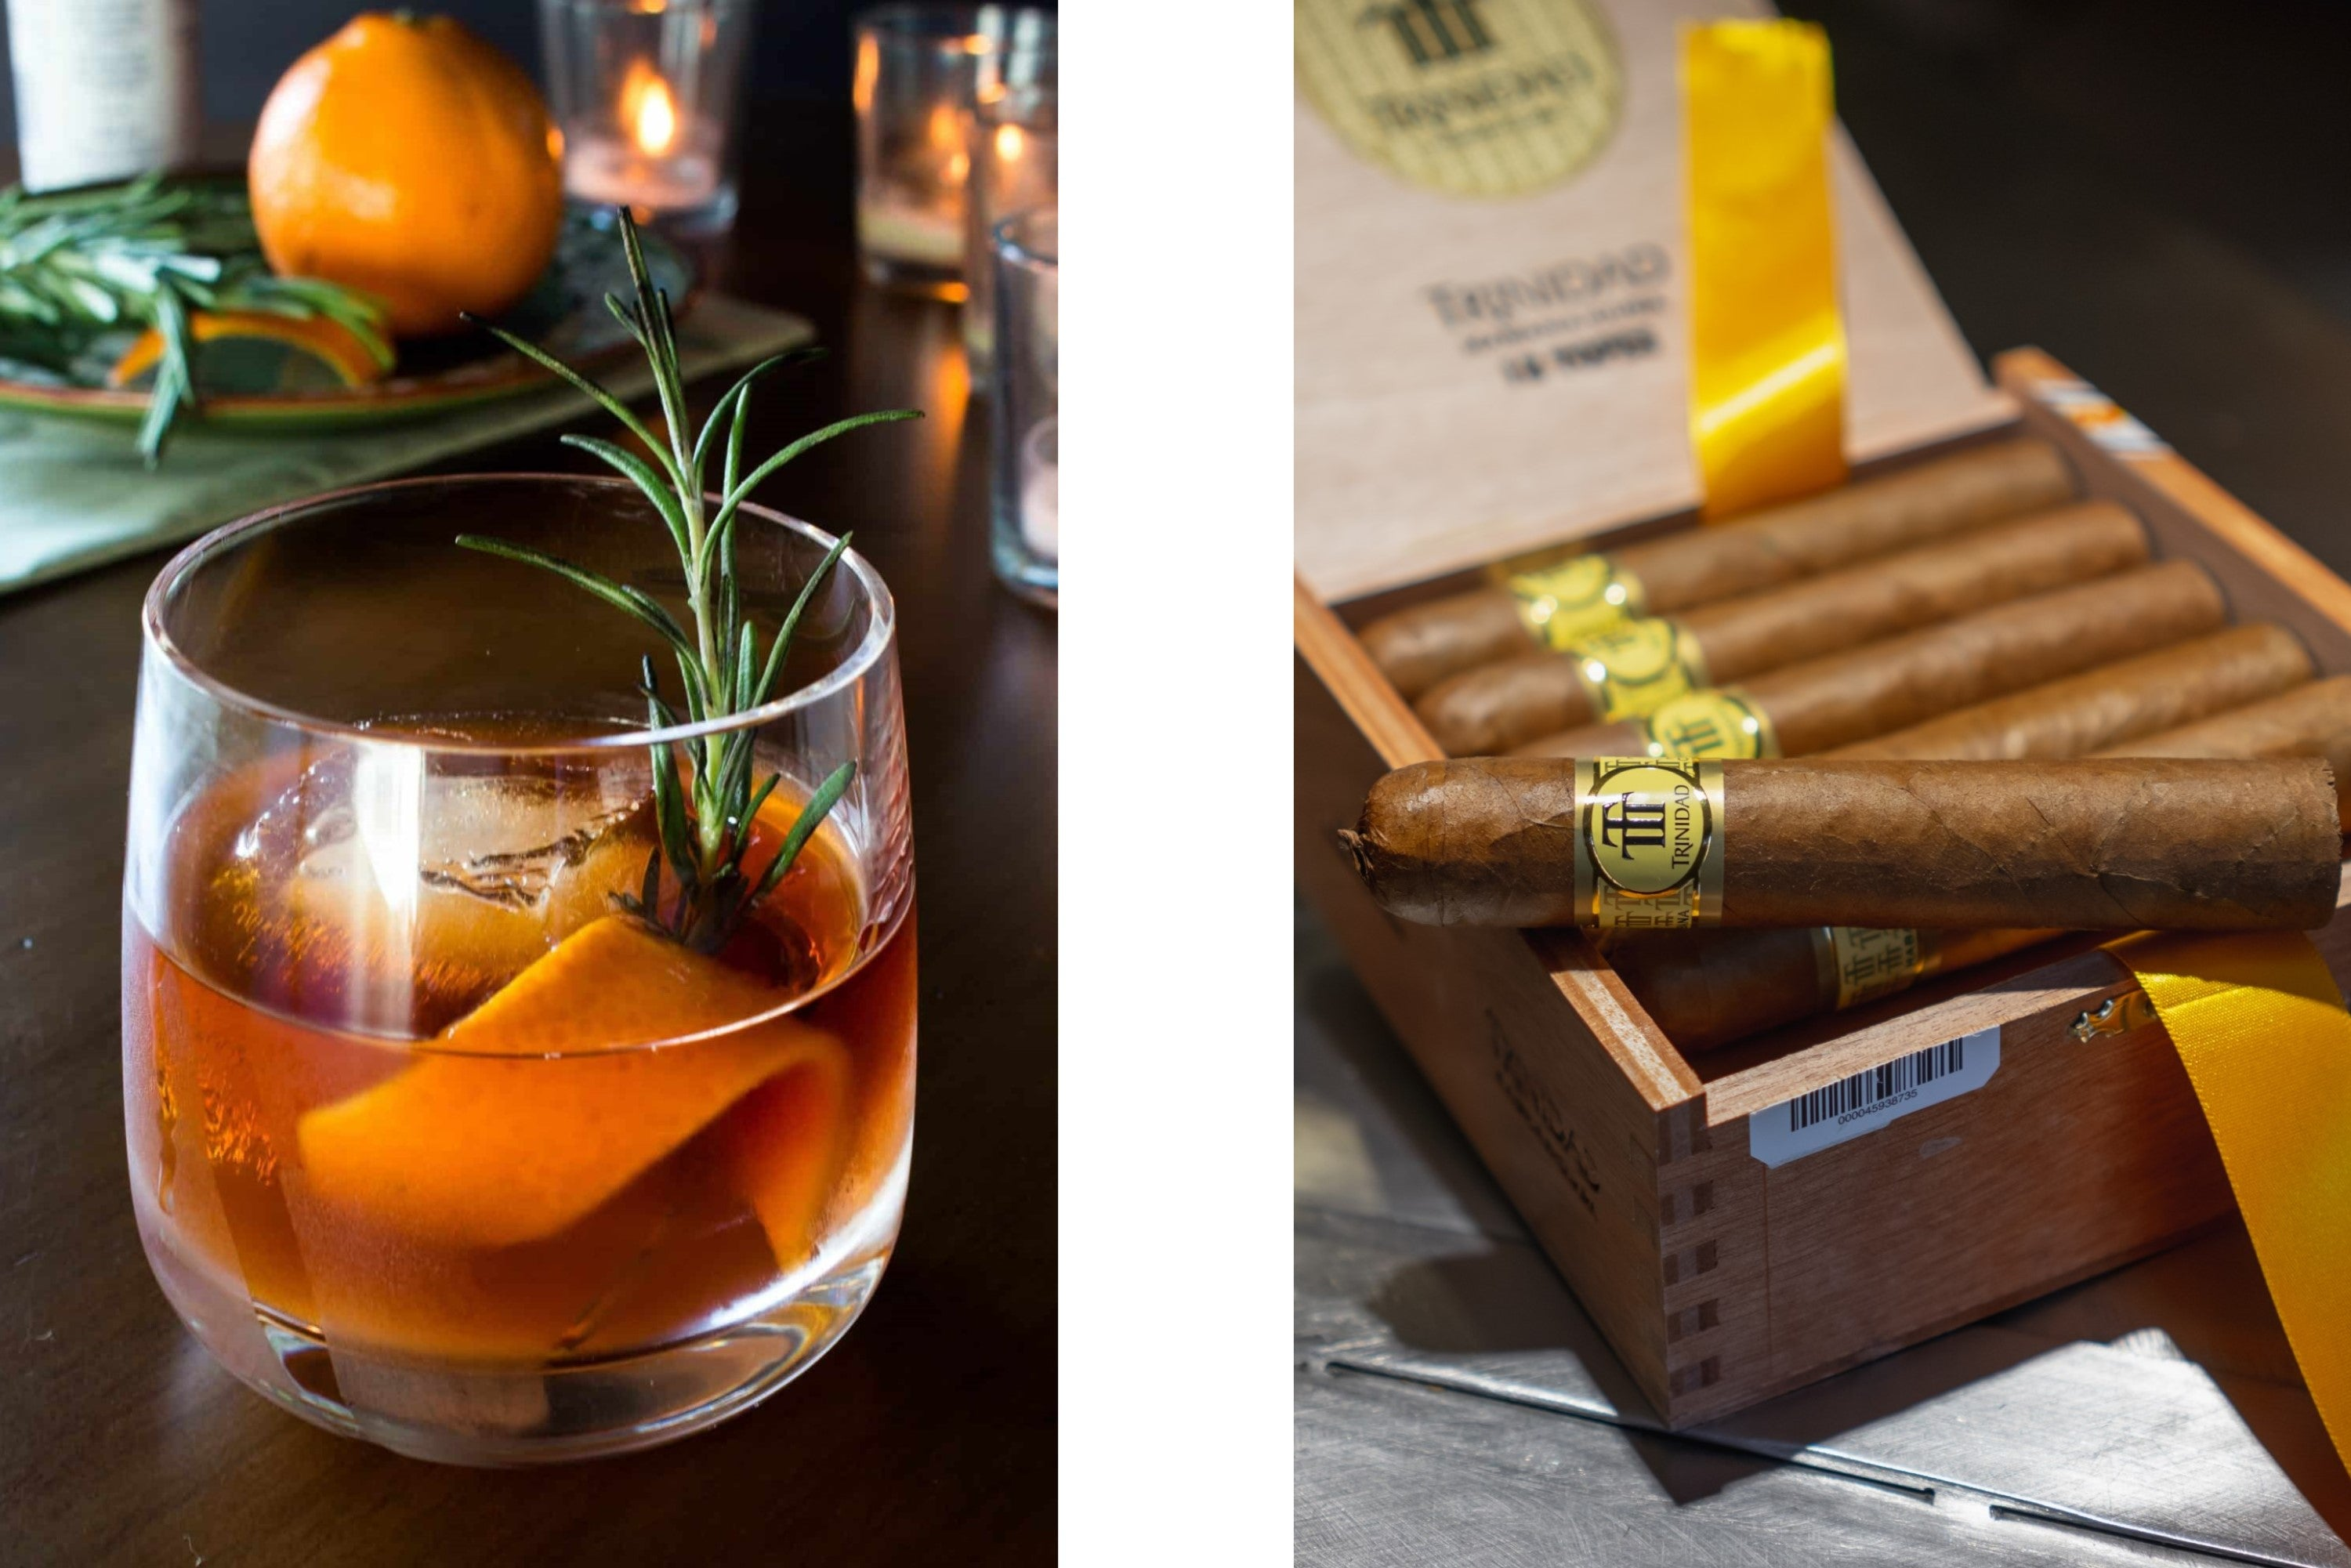 Smoked Old Fashioned with a box of Trinidad Topes